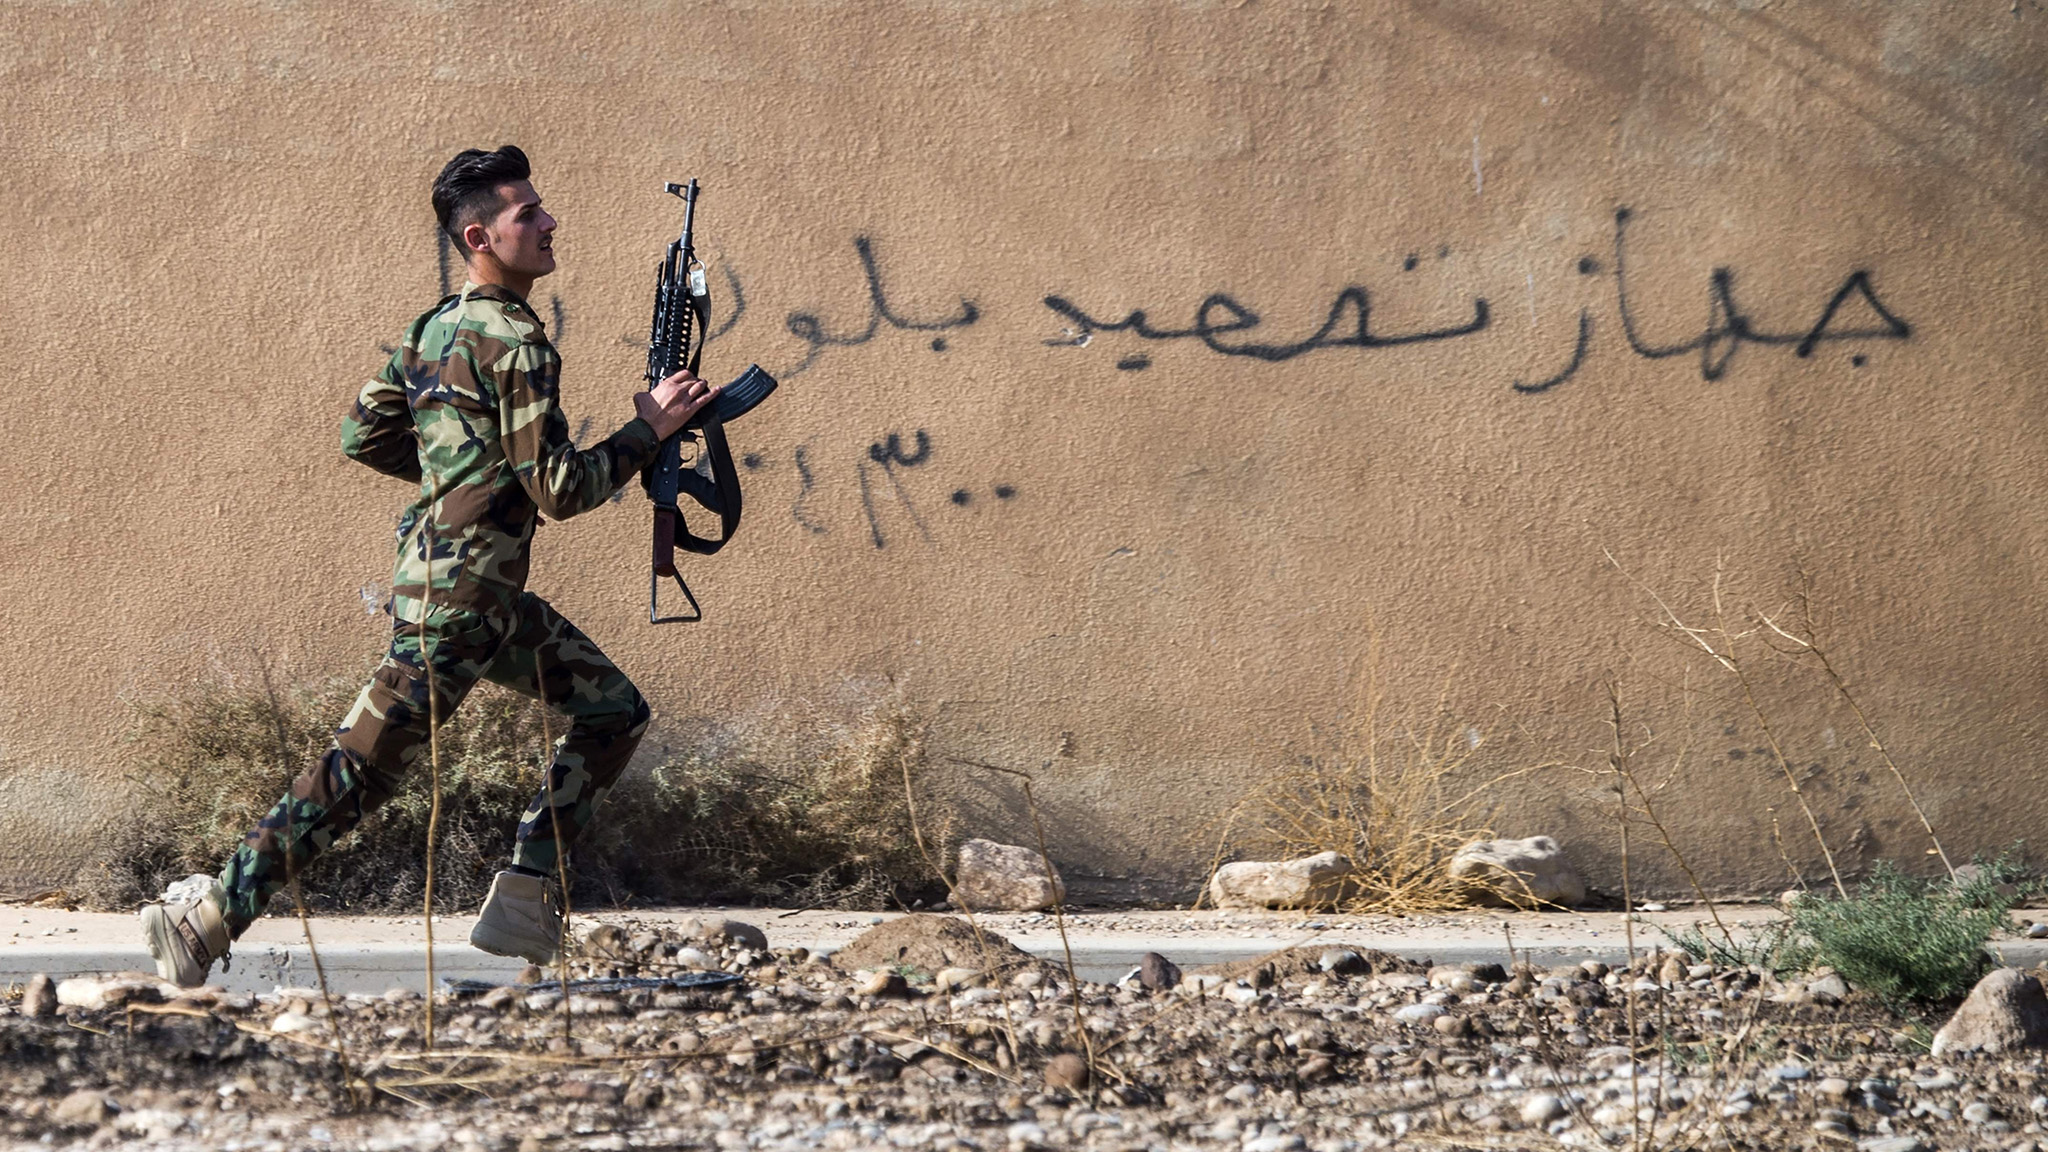 "A Peshmerga fighter runs to take position as the Iraqi Kurdish forces pushed deeper into the town of Bashiqa during street battles against Islamic State (IS) group jihadists on November 8, 2016.  Capturing Bashiqa would be one of the final steps in securing the eastern approaches to Mosul, three weeks into an offensive by Iraqi forces to retake the country's second city. The town was under the ""complete control"" of Kurdish peshmerga forces, Jabbar Yawar, the secretary general of the Kurdish regional ministry responsible for the fighters, told AFP. / AFP PHOTO / Odd ANDERSENODD ANDERSEN/AFP/Getty Images"